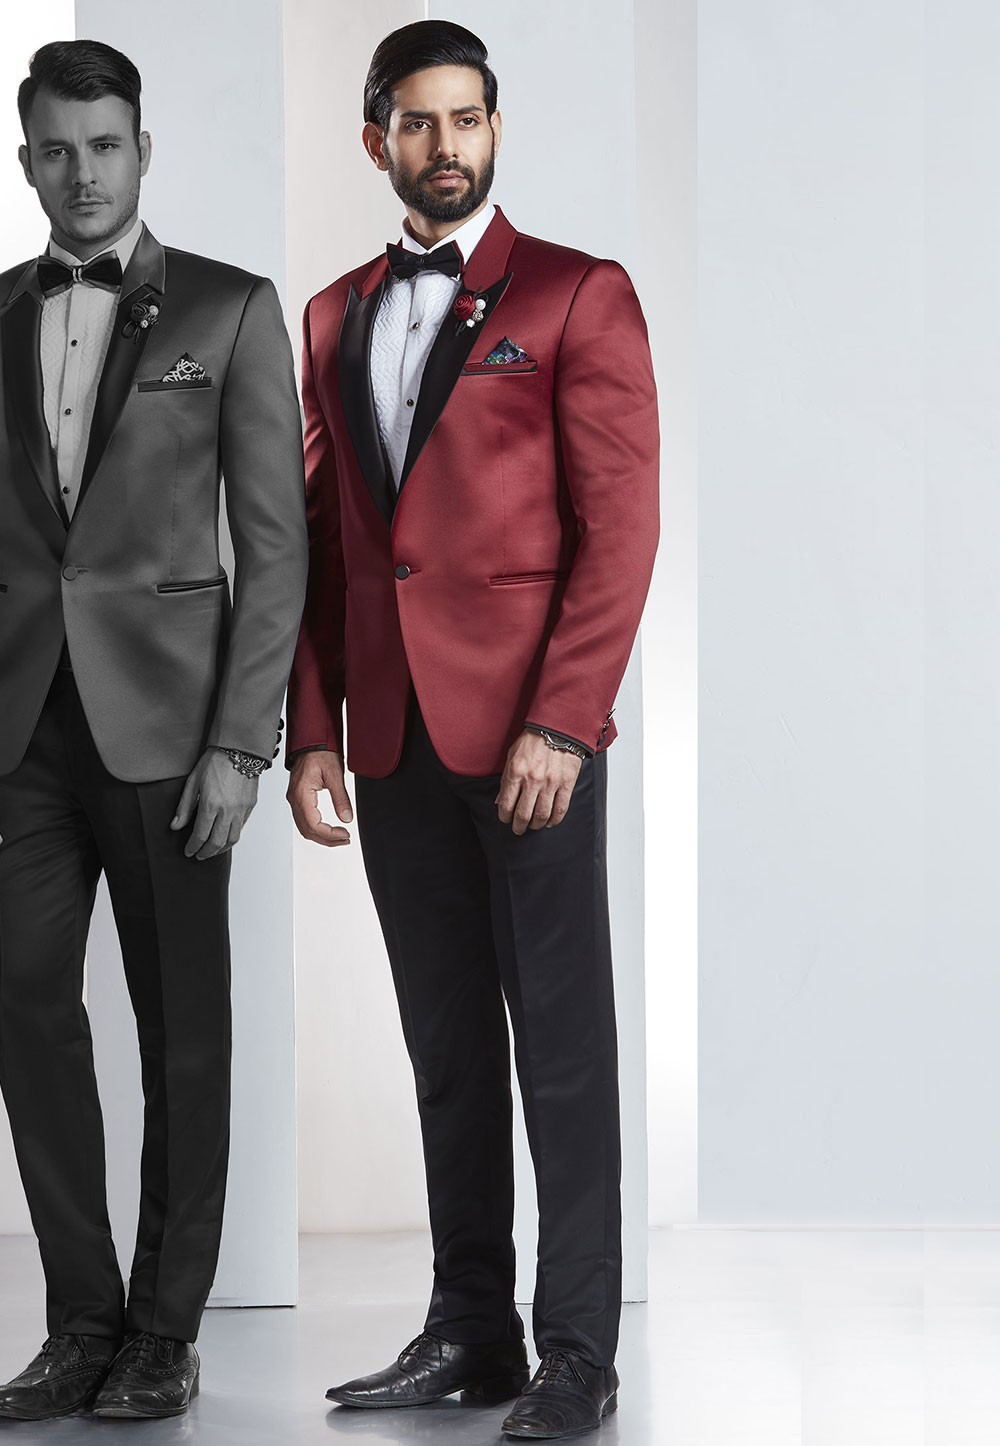 Designer Suits for Men Red,Maroon Color Designer Wedding Suit